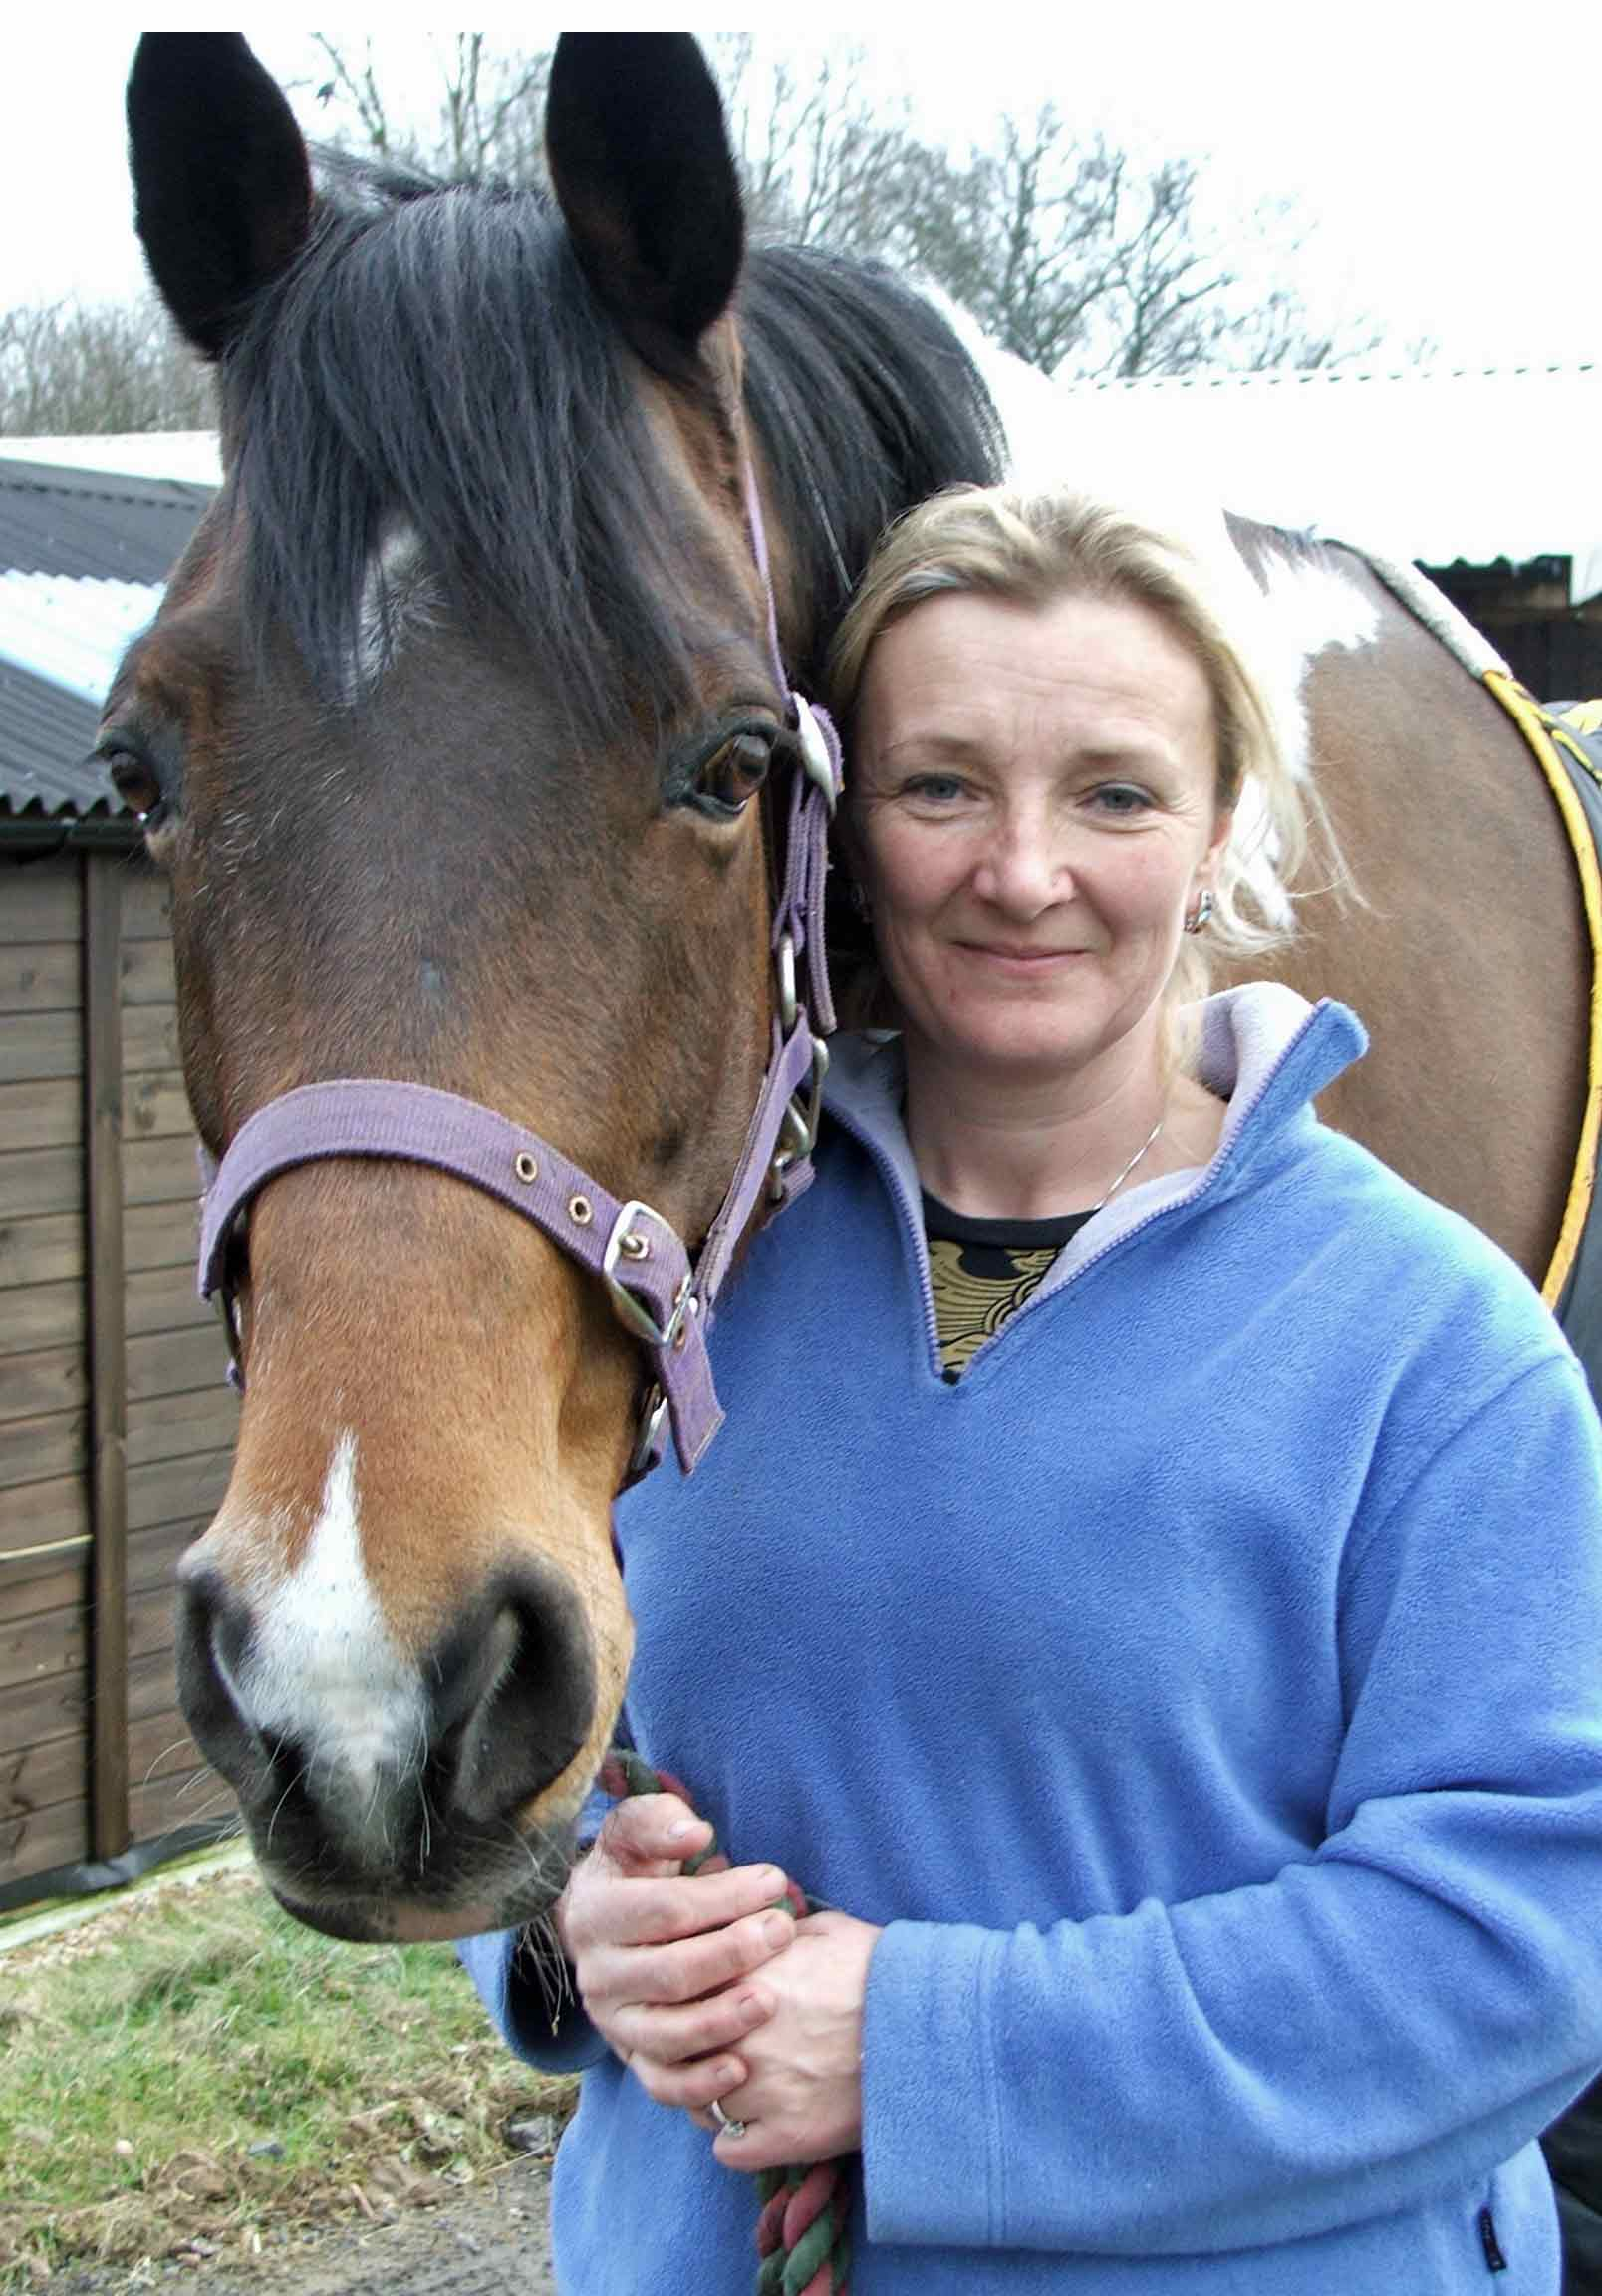 Tina with an equine patient